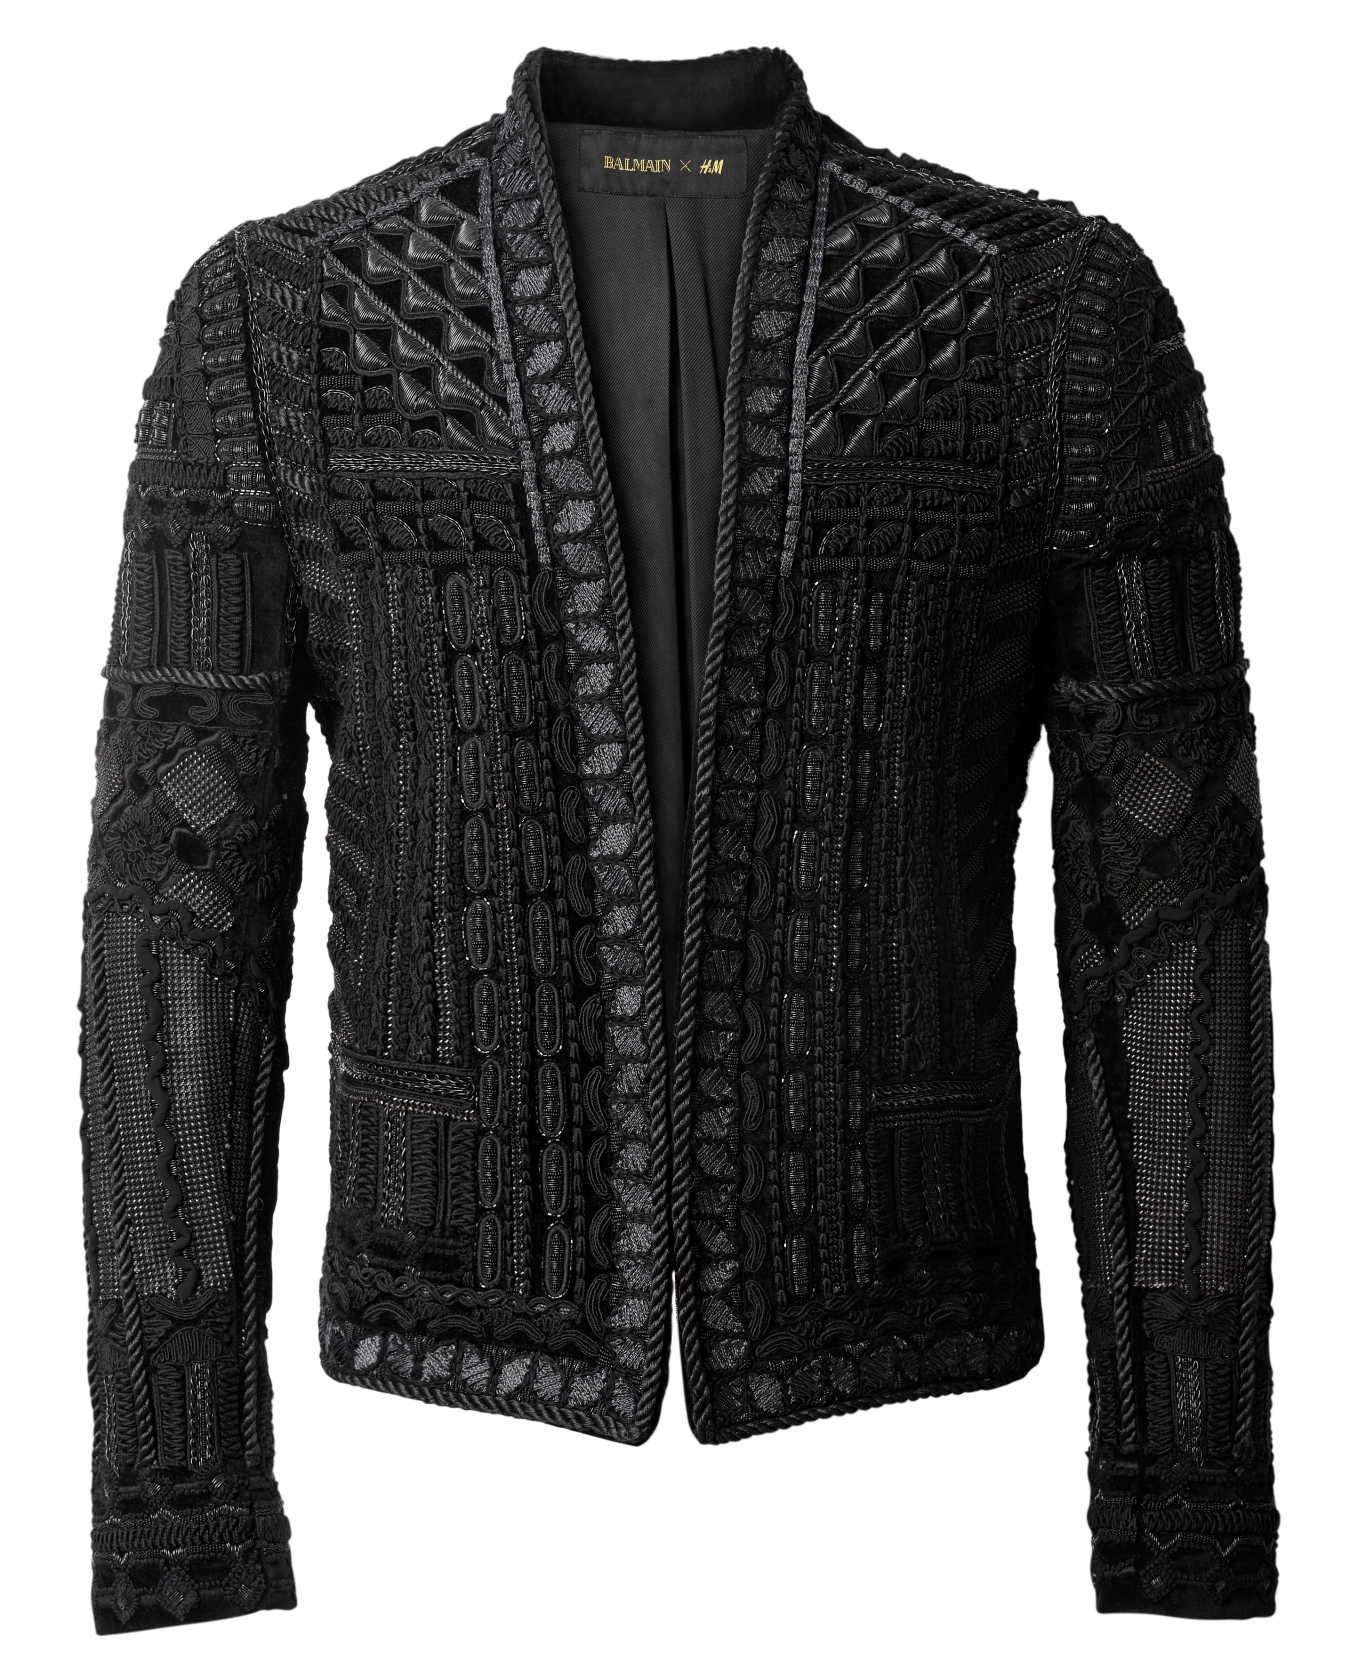 928d27566 Balmain x H&M: See the Full Collection With Prices | Jackets ...